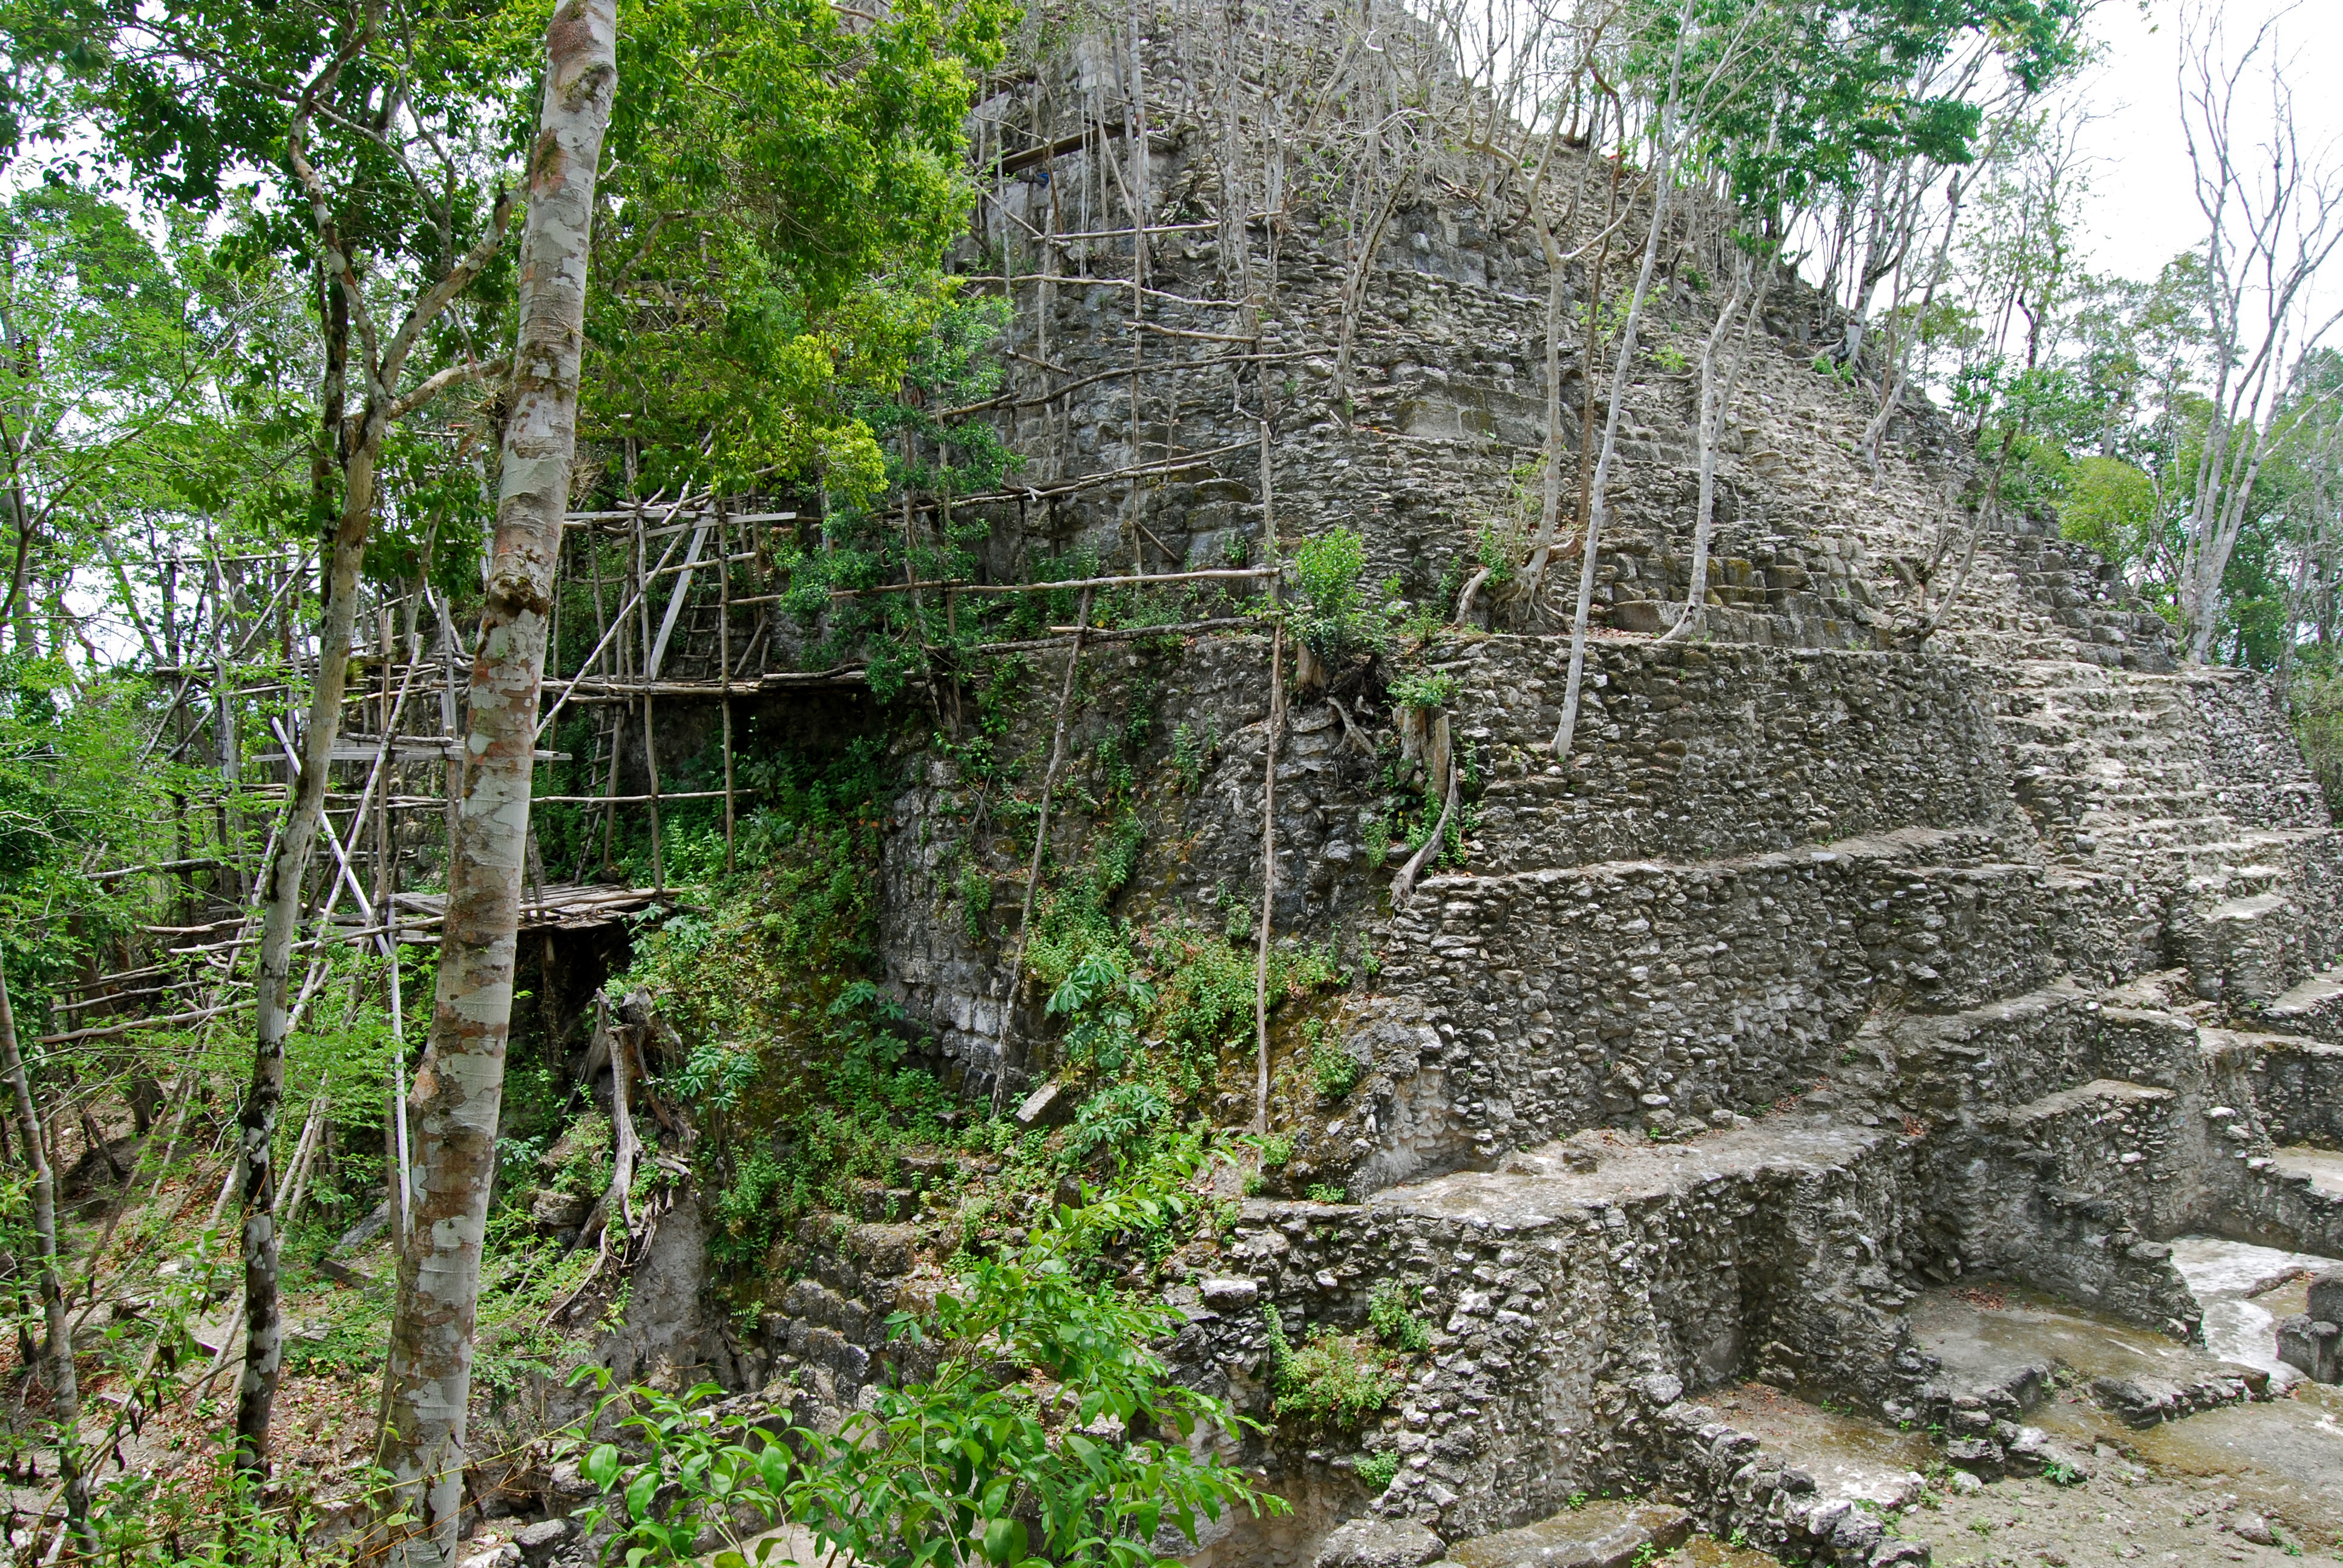 Mayan-temple-jungle-overgrowth-El-Mirador